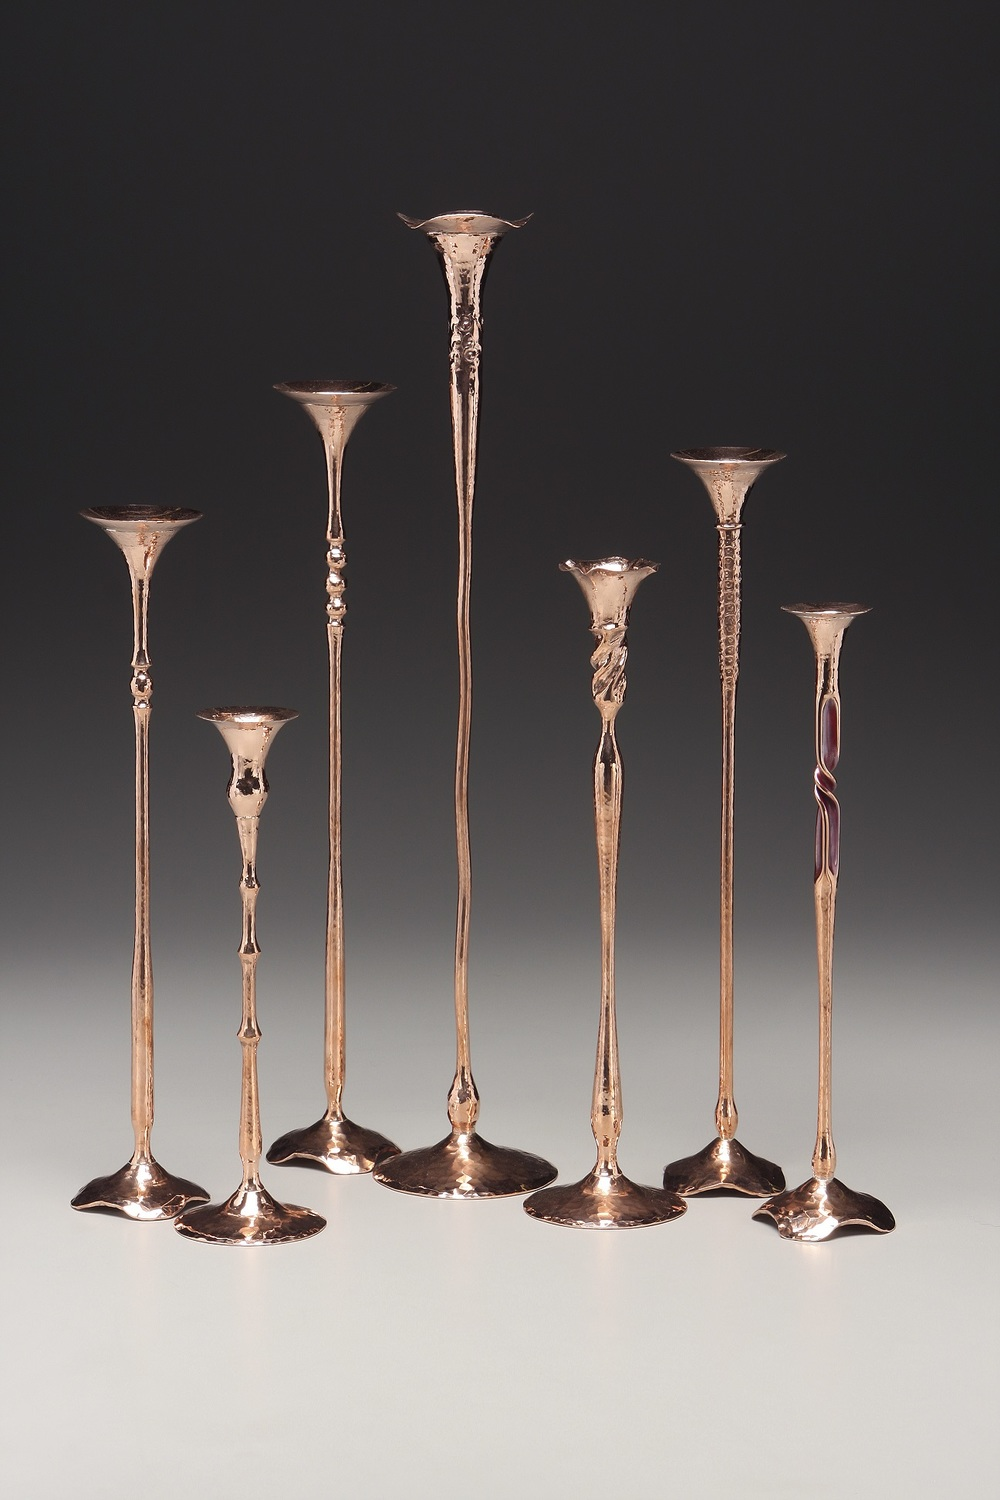 Greg Hessel - San Rafael, CA.  Hand-forged & hammered copper candlesticks.